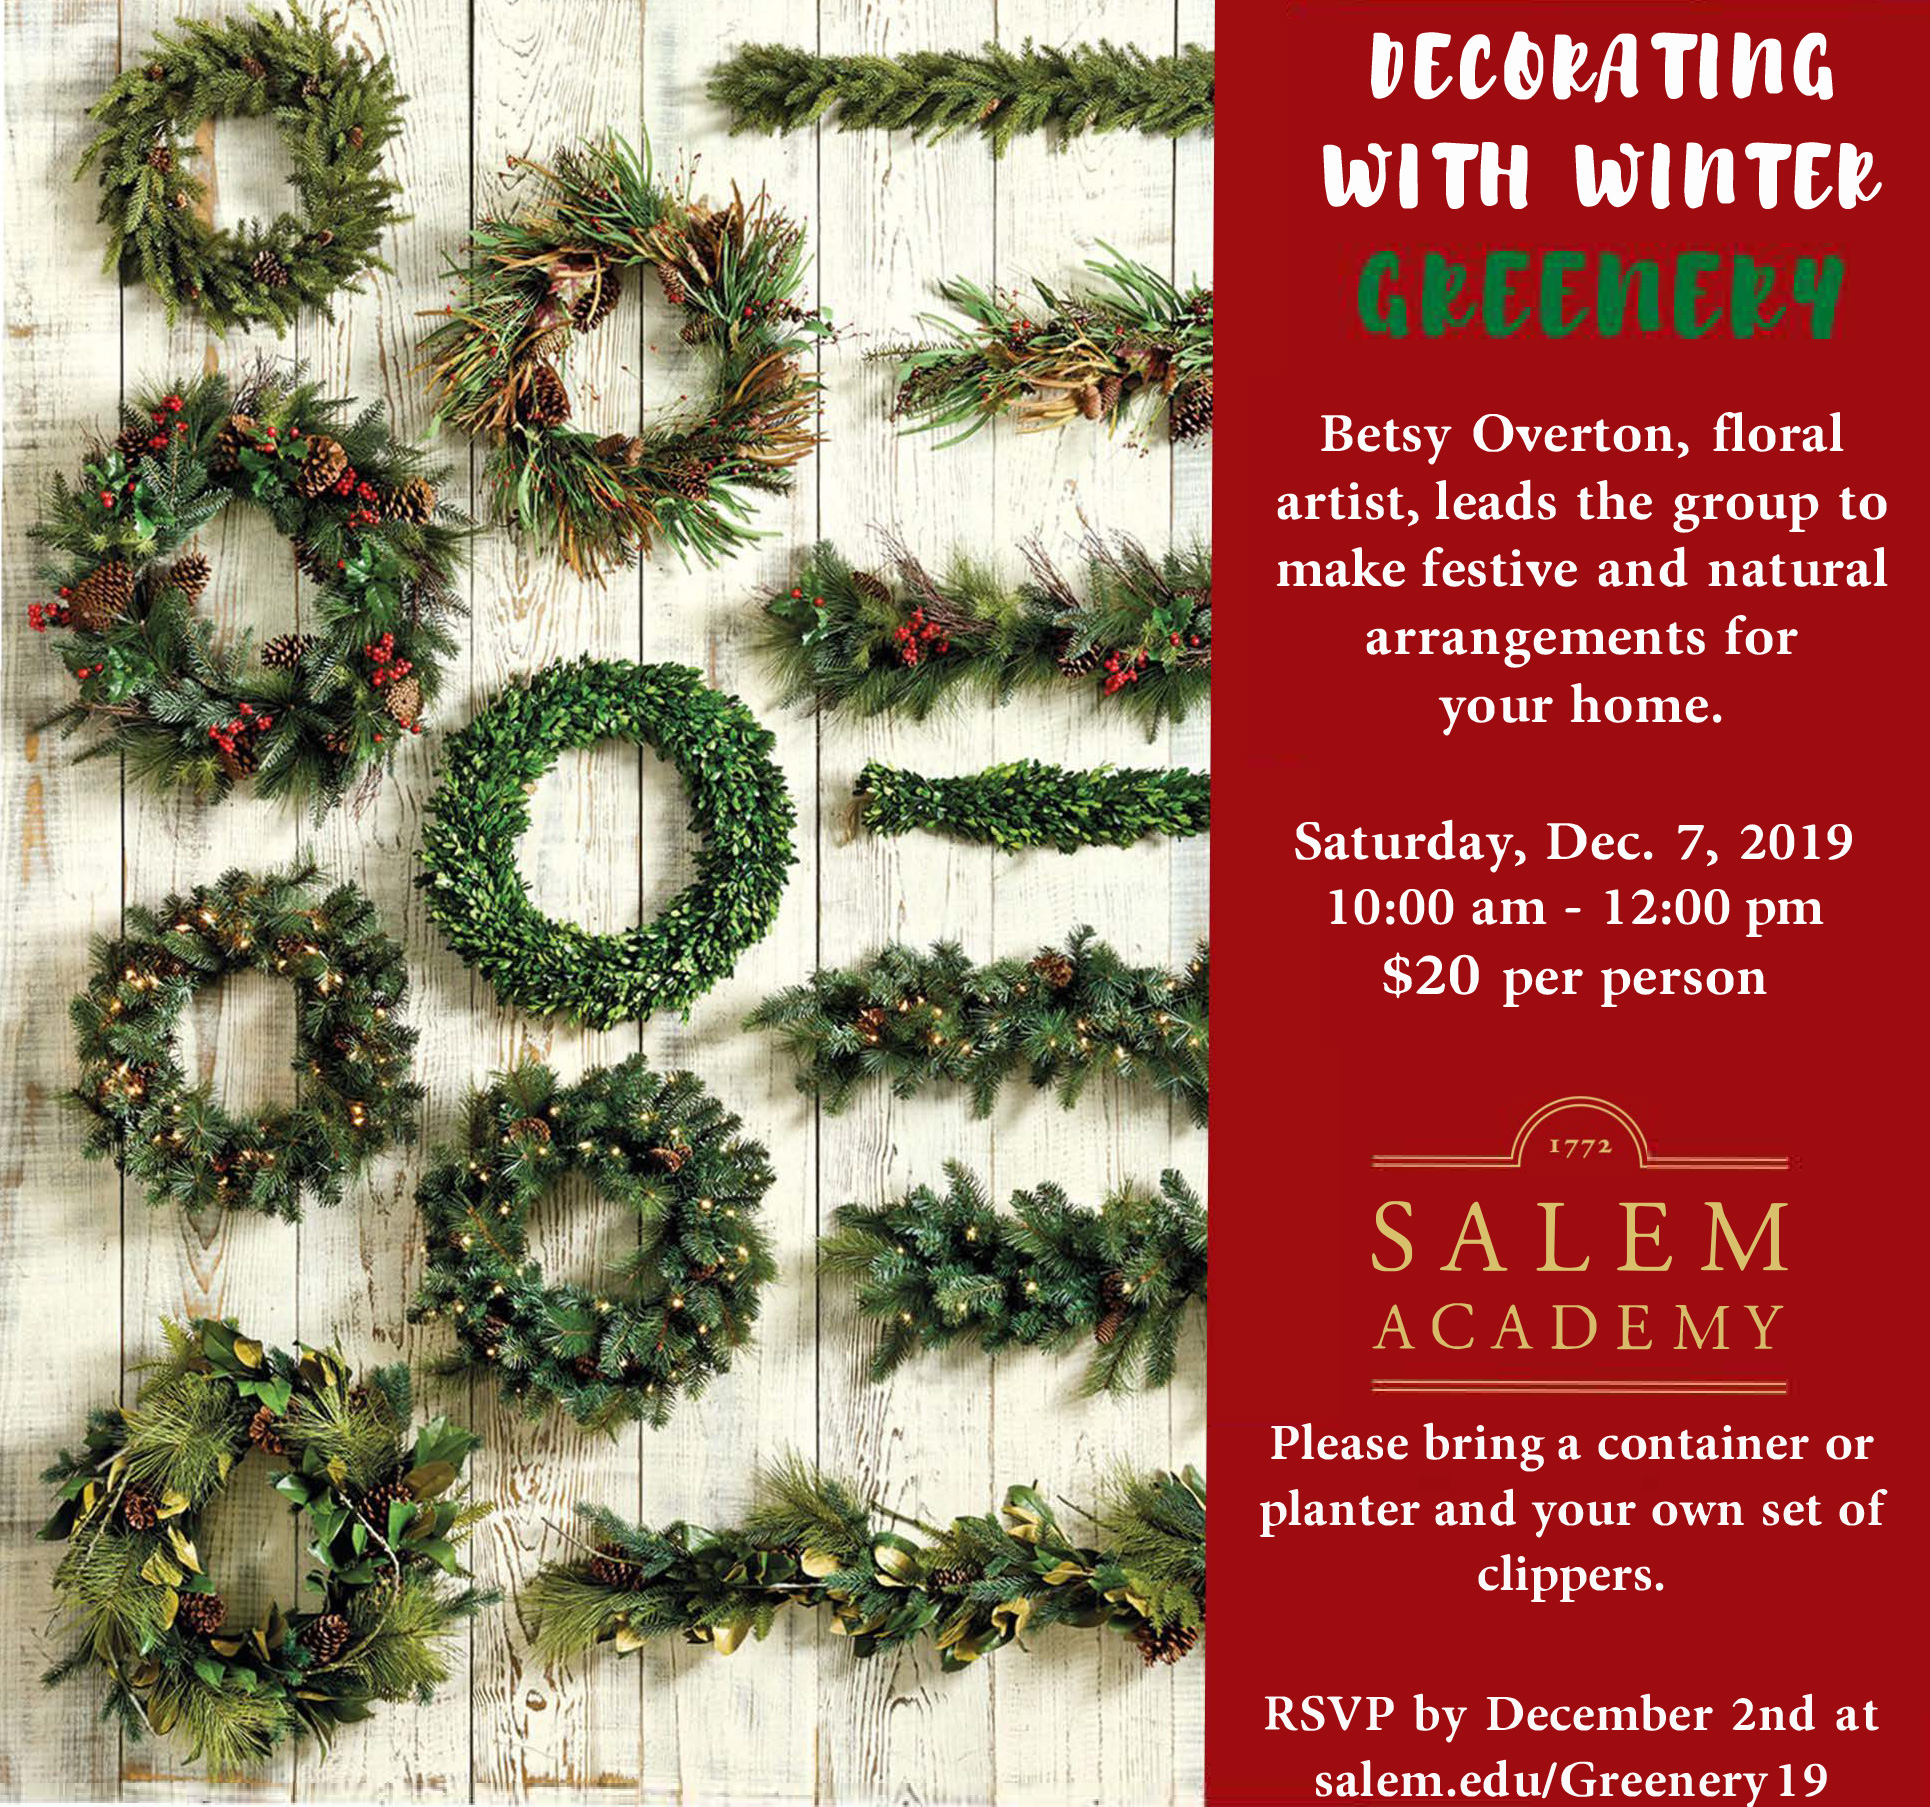 2019 Holiday Greenery Image - see page for details.